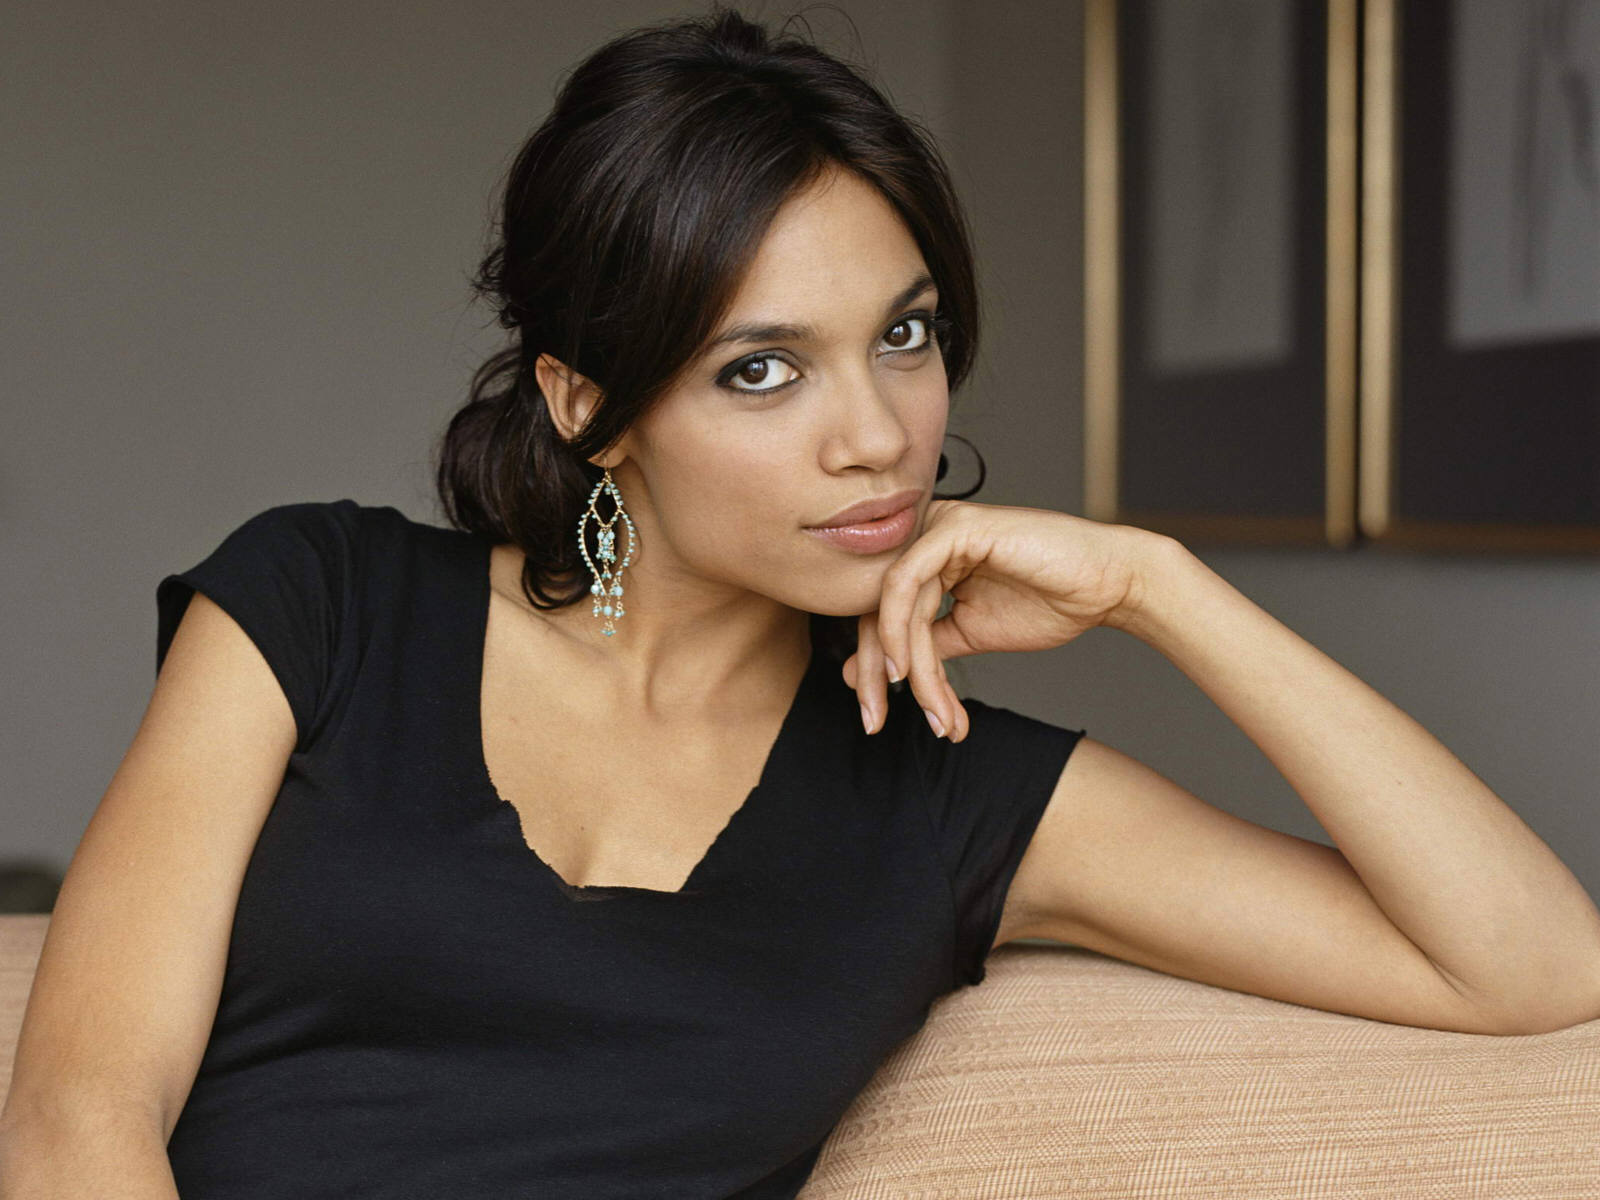 ROSARIO DAWSON AND DIEGO LUNA TO PRESENT THE NOMINEES FOR THE 30th FILM INDEPENDENT SPIRIT AWARDS